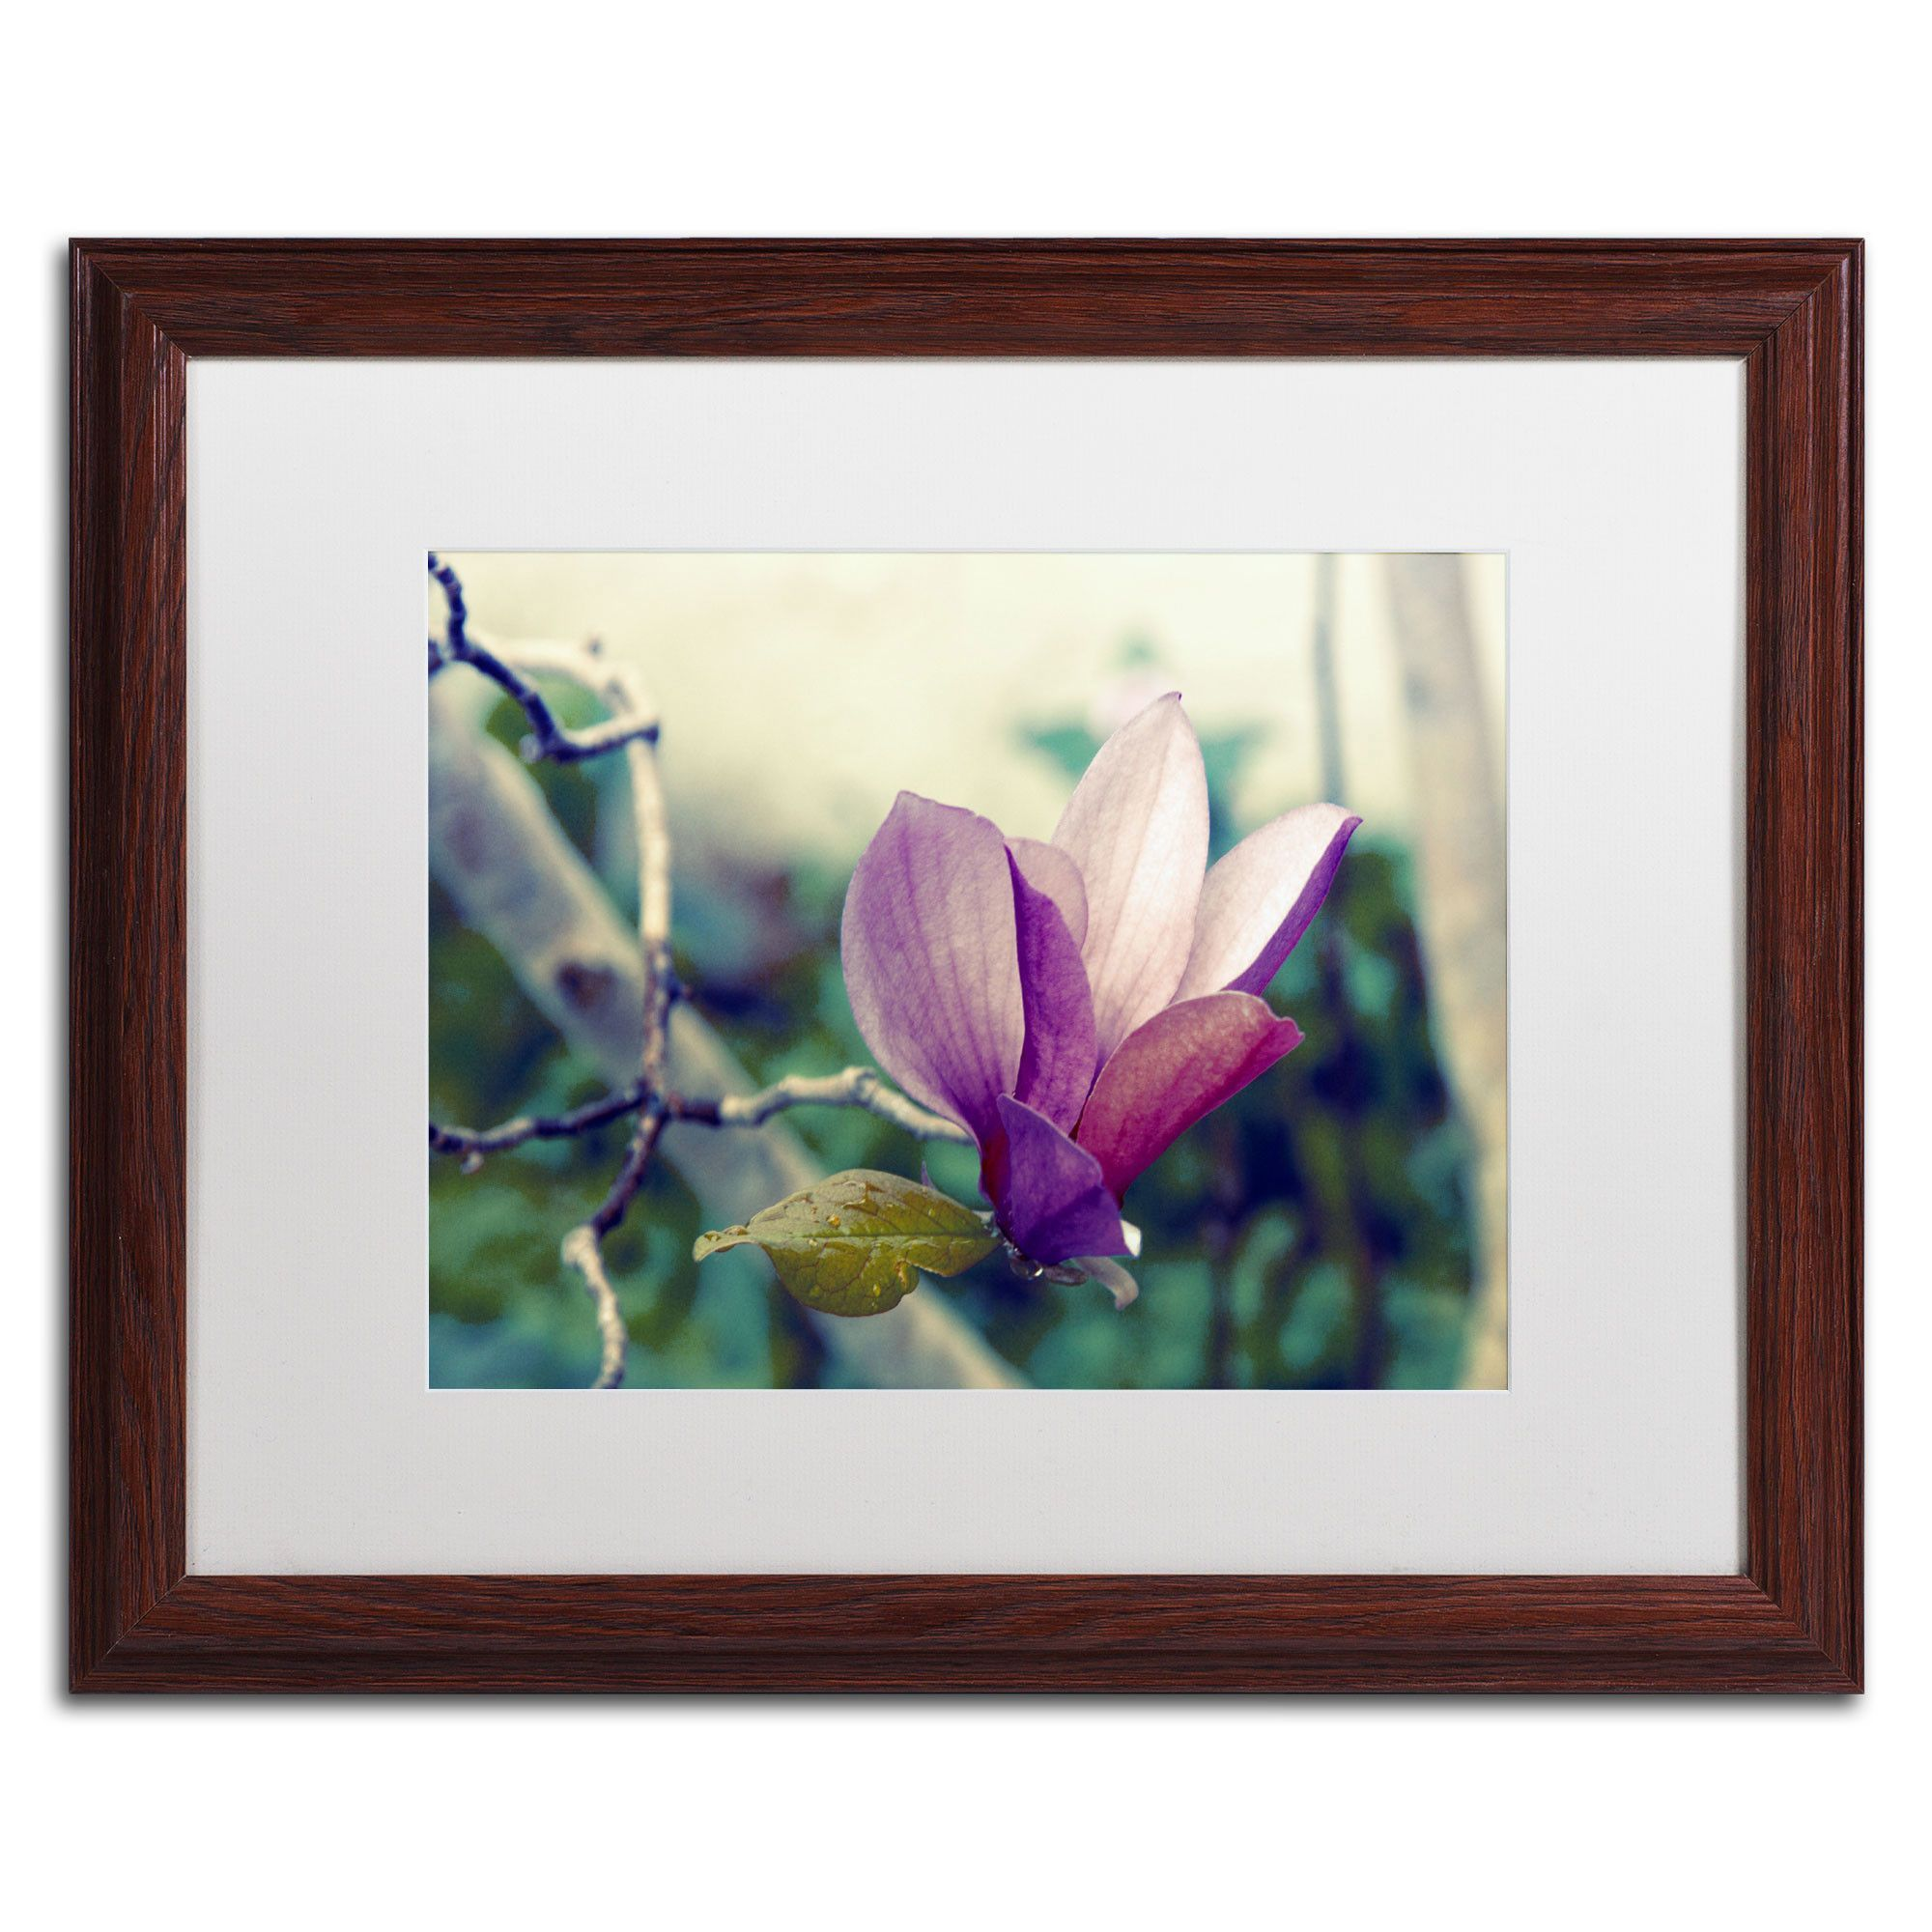 'Pink Magnolia' by Patty Tuggle Framed Photographic Print